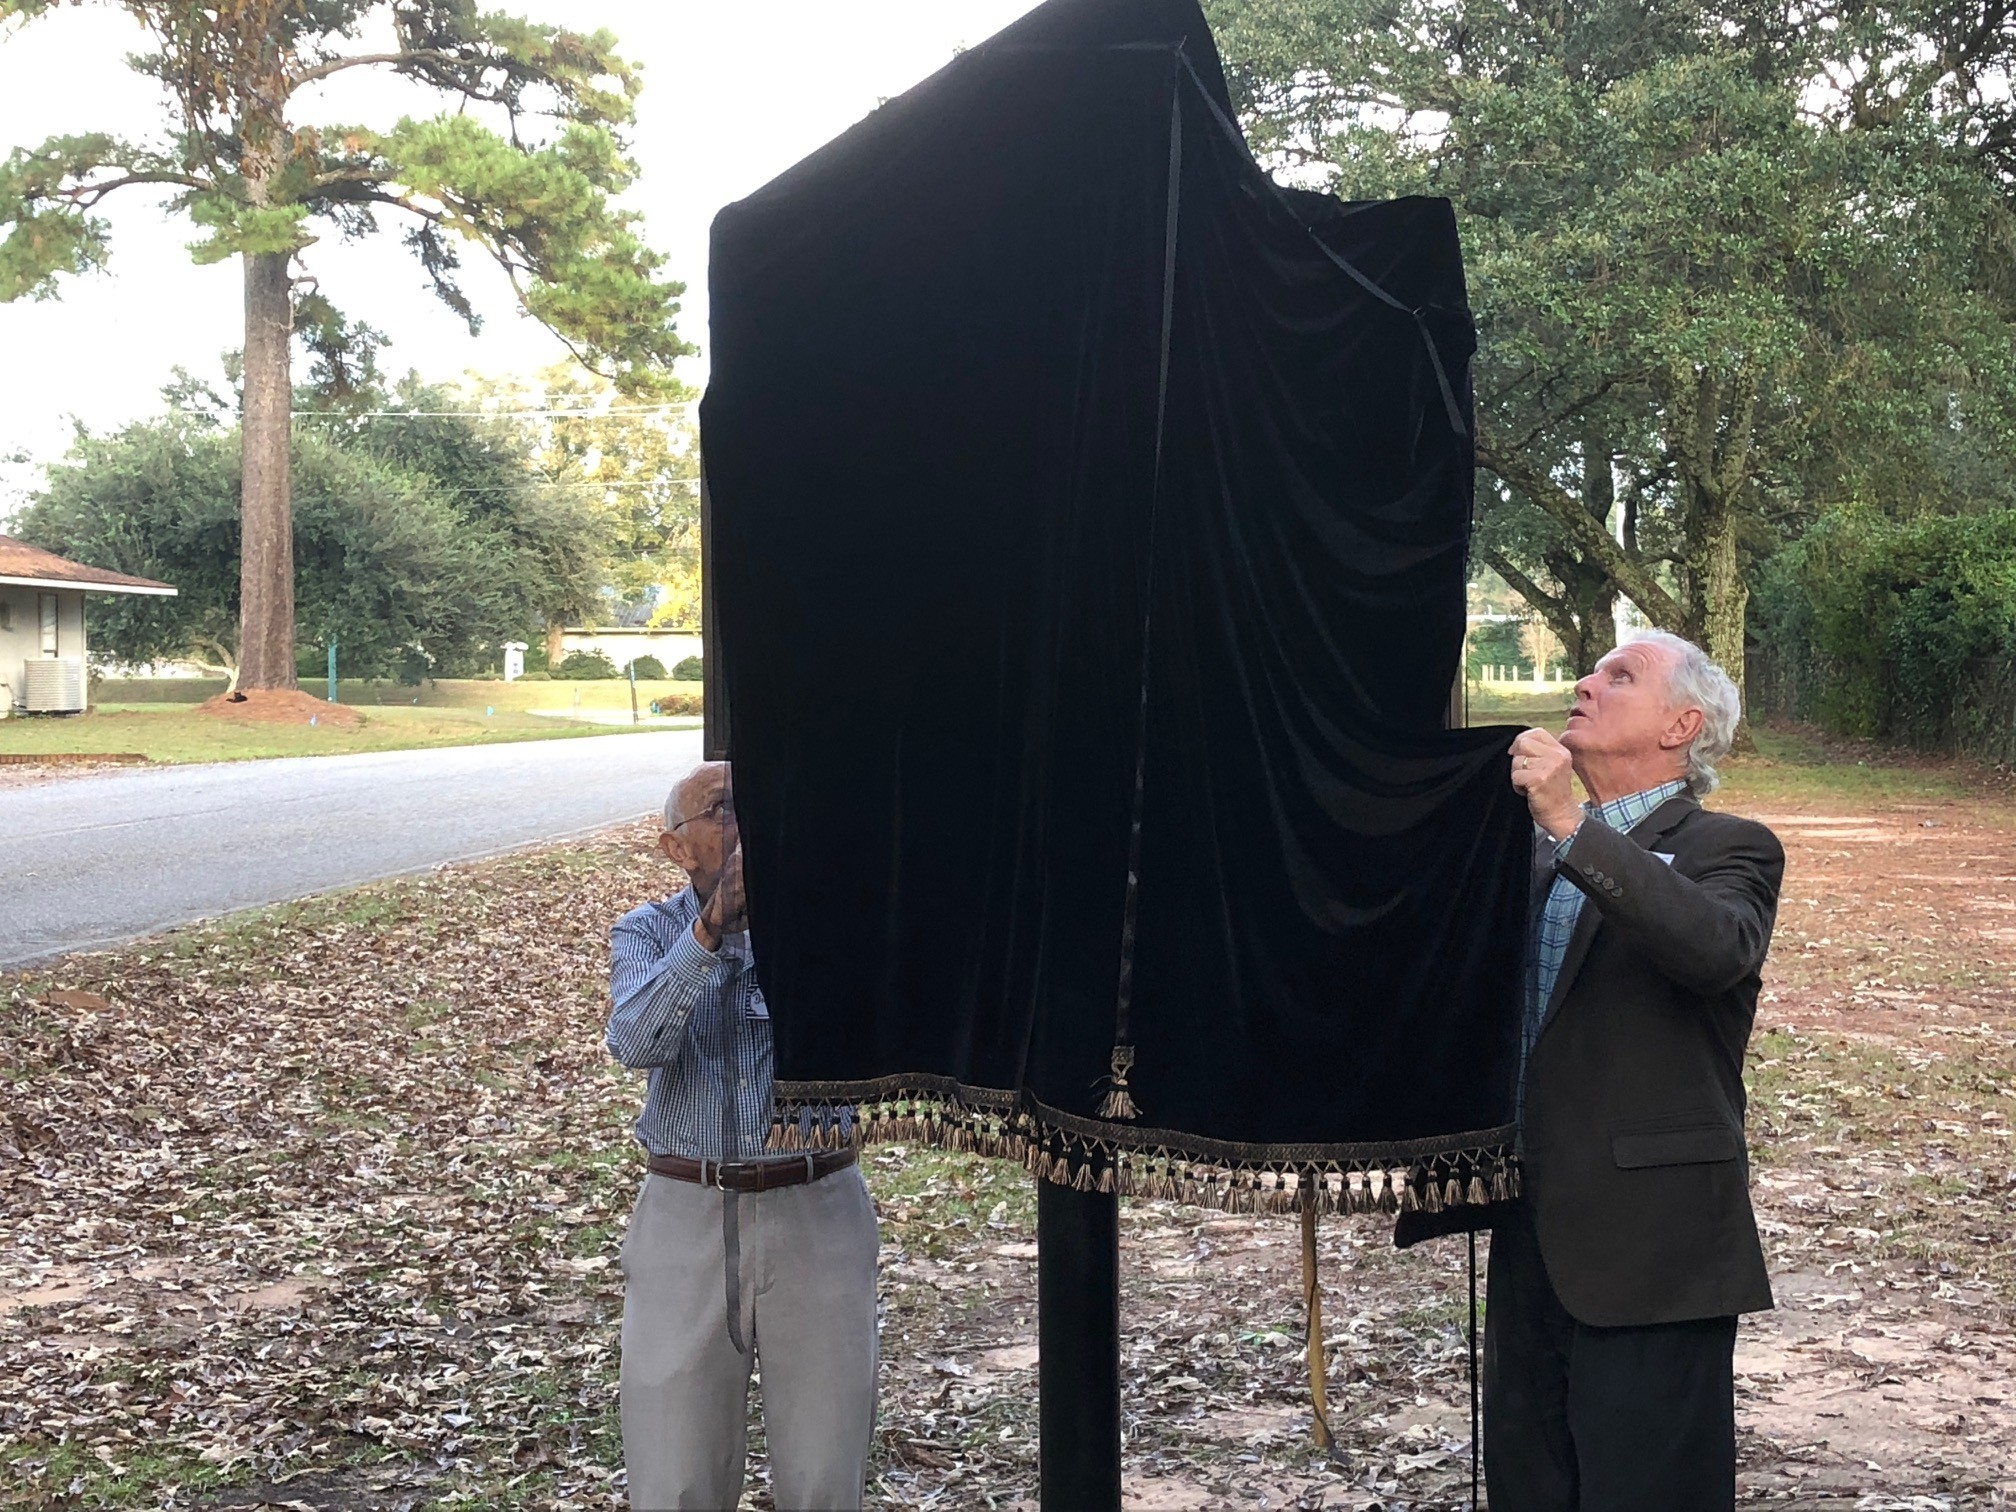 Montrose Cemetery Board trustees Dick Scott and Steve Moore help unveil the new historic marker for the Village on Montrose, located on Sibley Street outside the Montrose Cemetery.